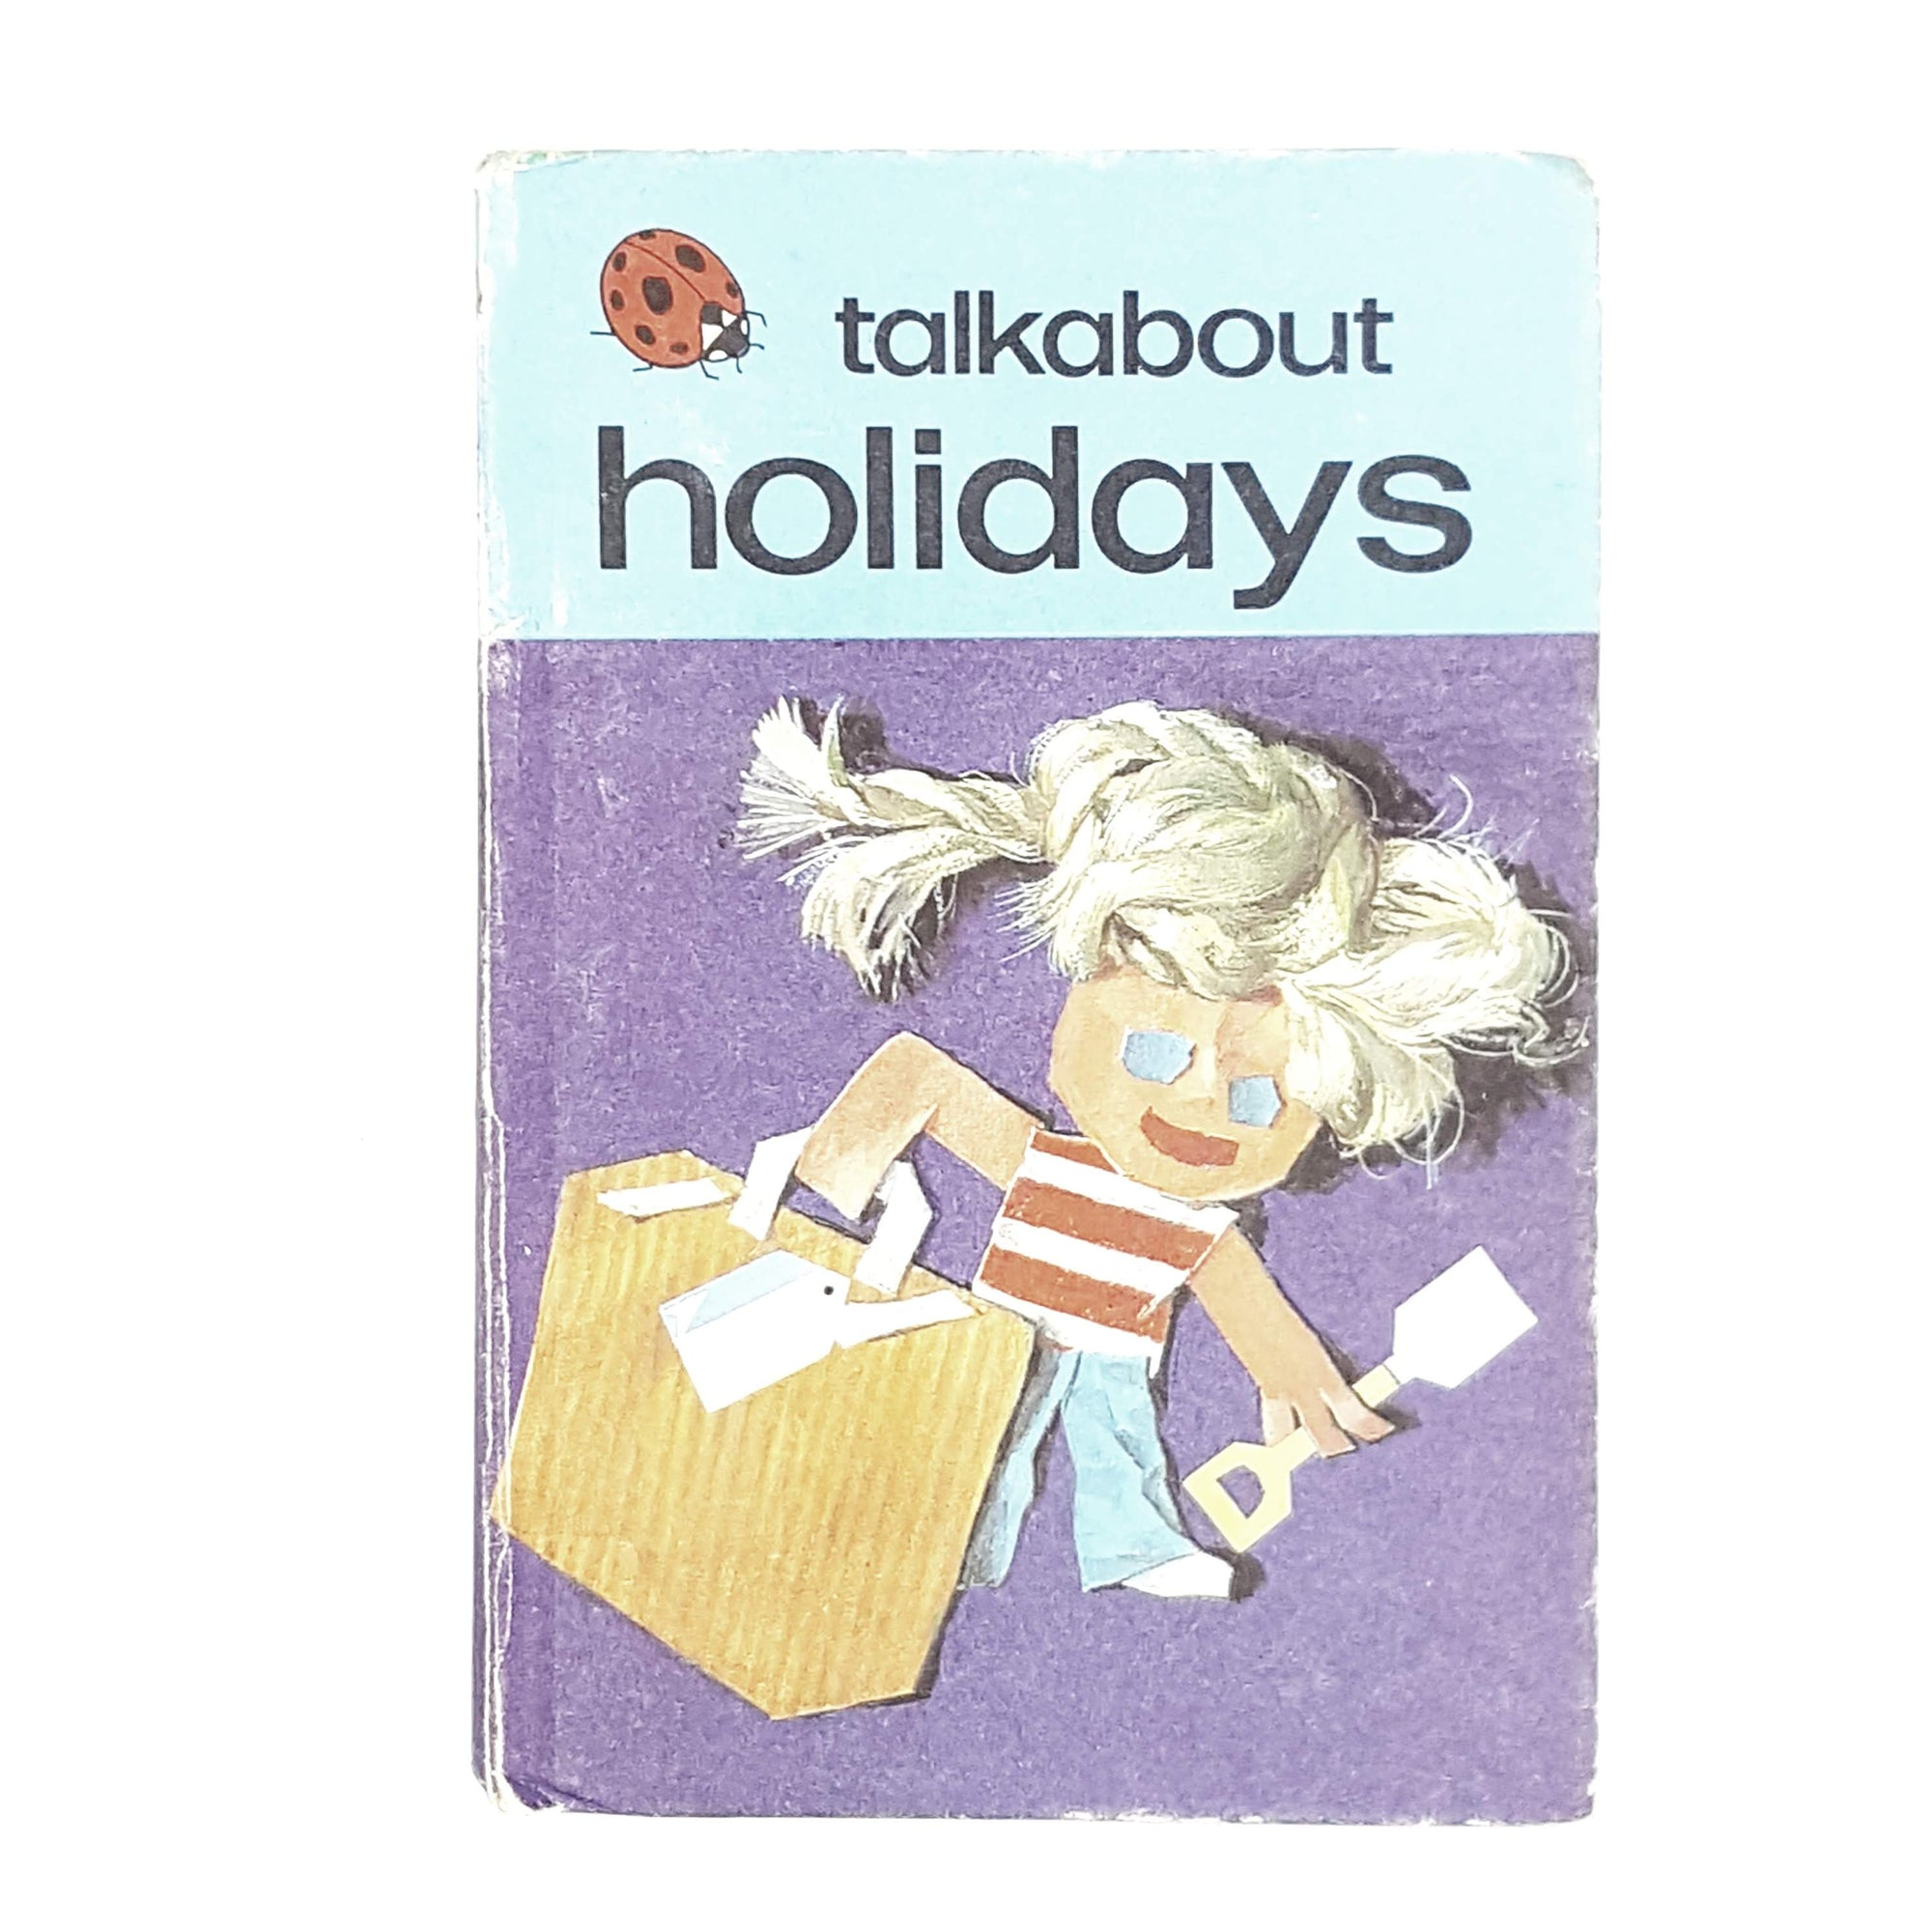 Talkabout Holidays by Margaret West 1977